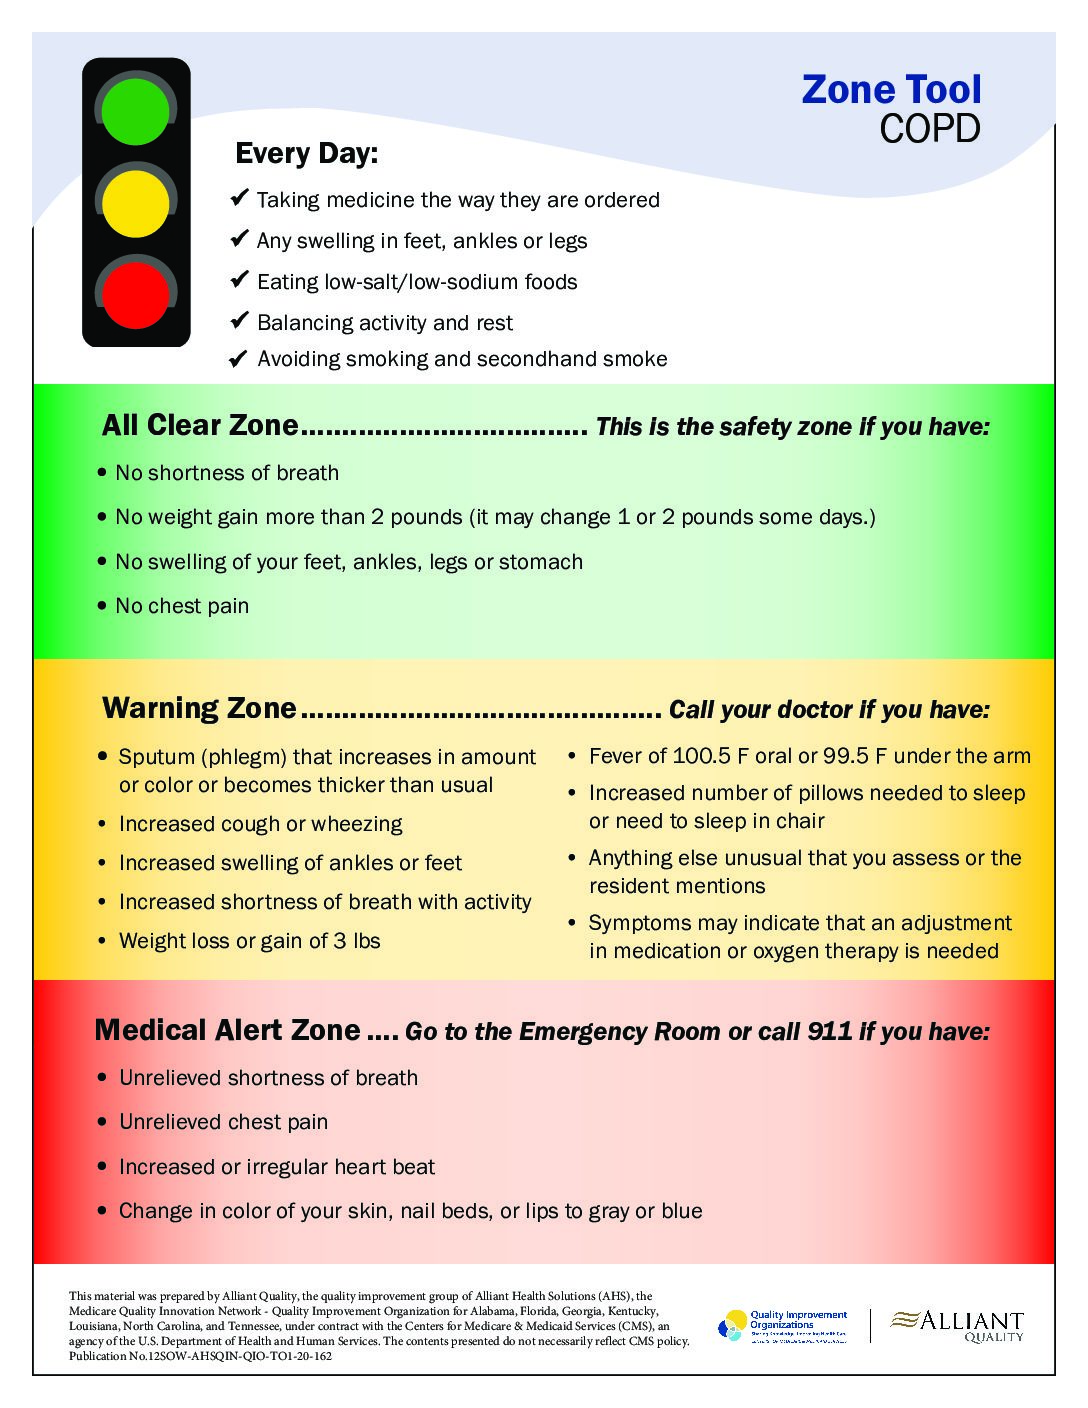 Zone Tool – COPD